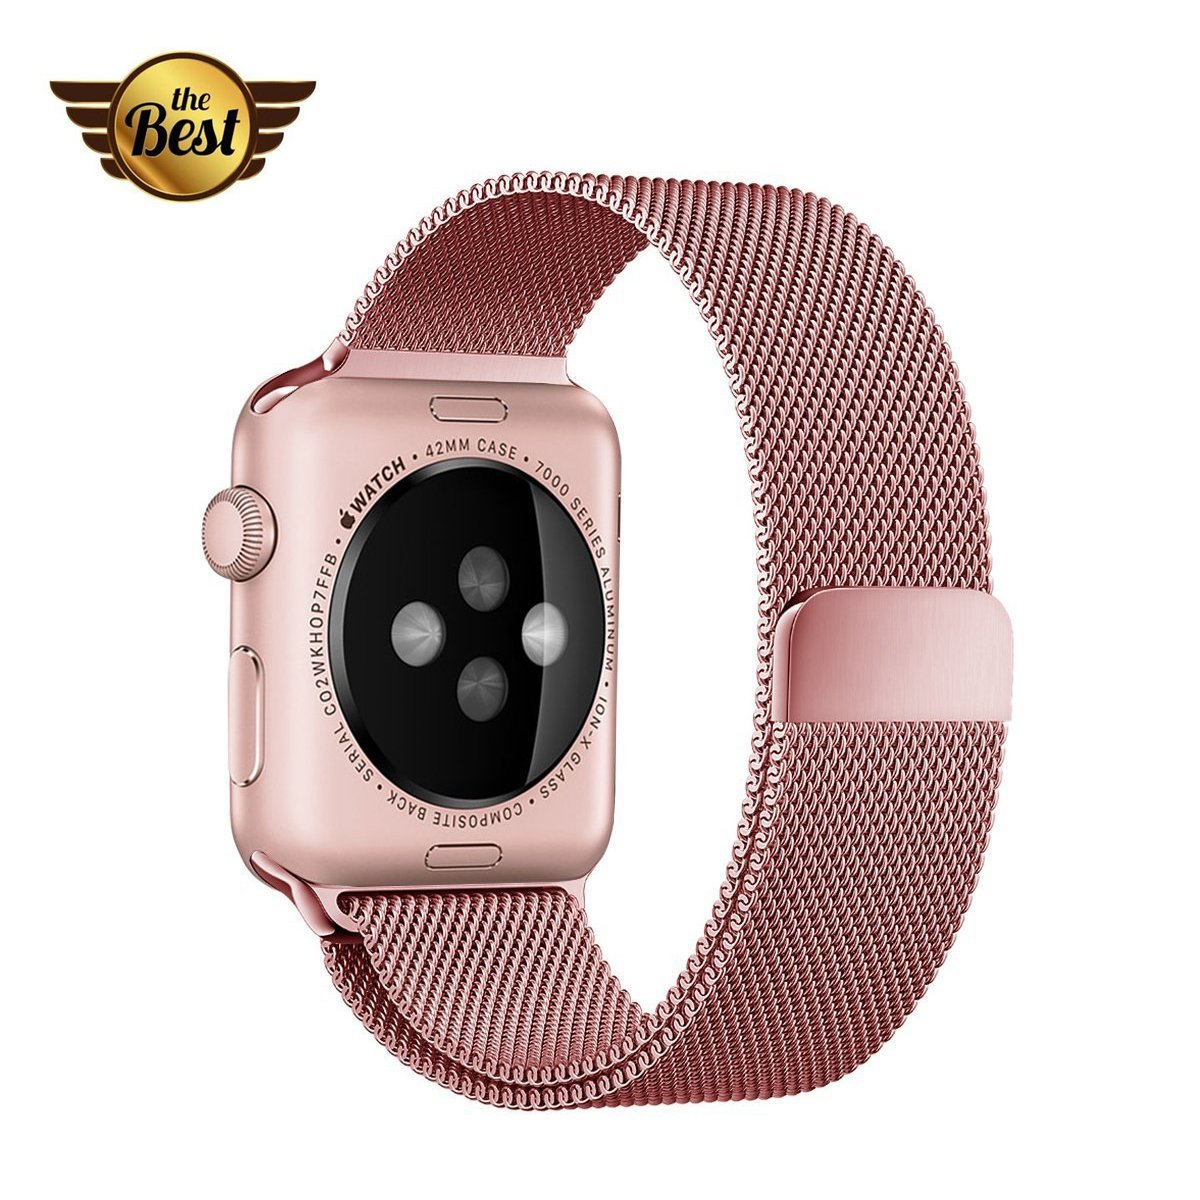 Apple Watch Band, Qiwooode iWatch Band Magnetic Closure Clasp Mesh Loop Milanese Stainless Steel Replacement Bracelet Strap for Apple iWatch Series 1 Series 2 Sport & Edition (38mm Rose Gold)